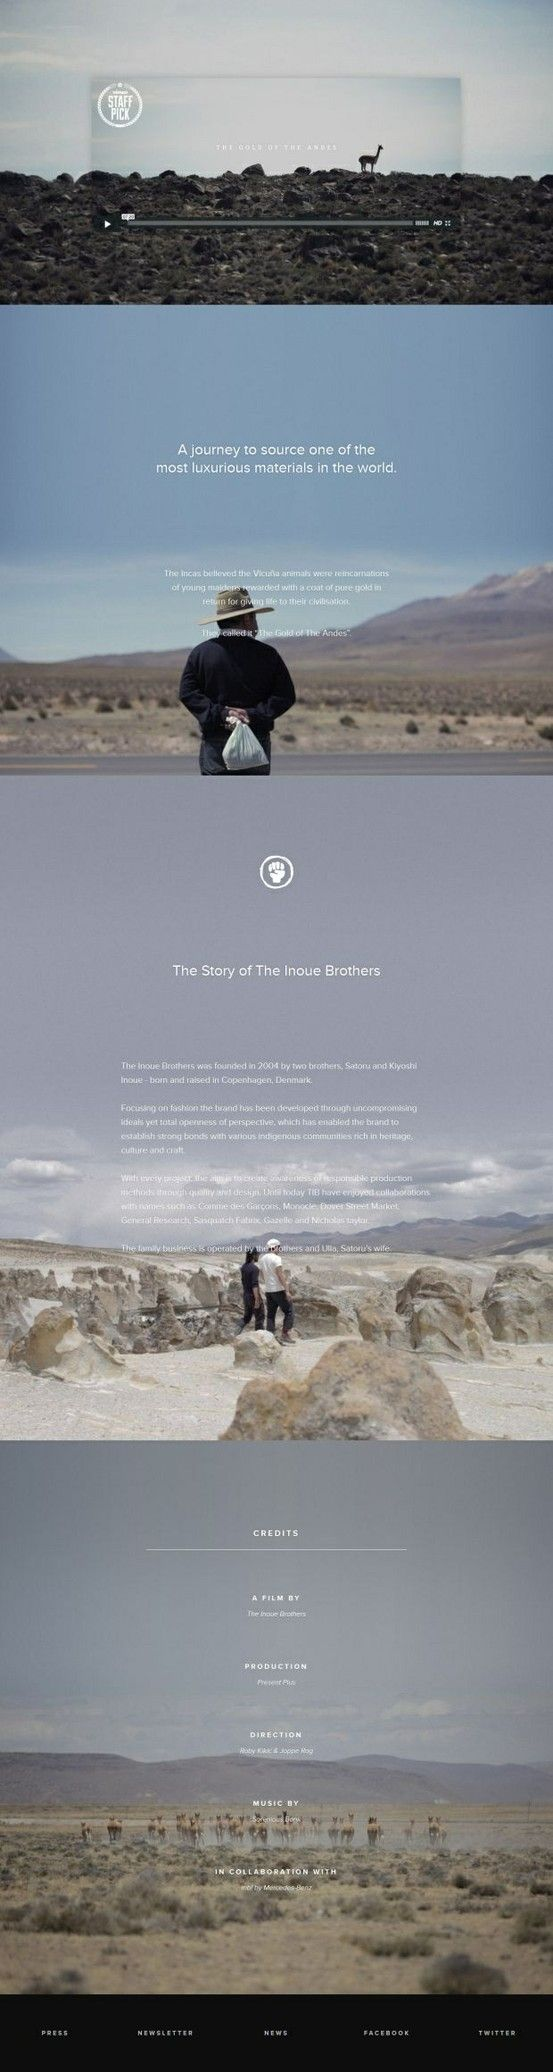 #web #design #layout #userinterface #website < repinned by Alexander Kaiser | visit www.kaiser-alexander.de